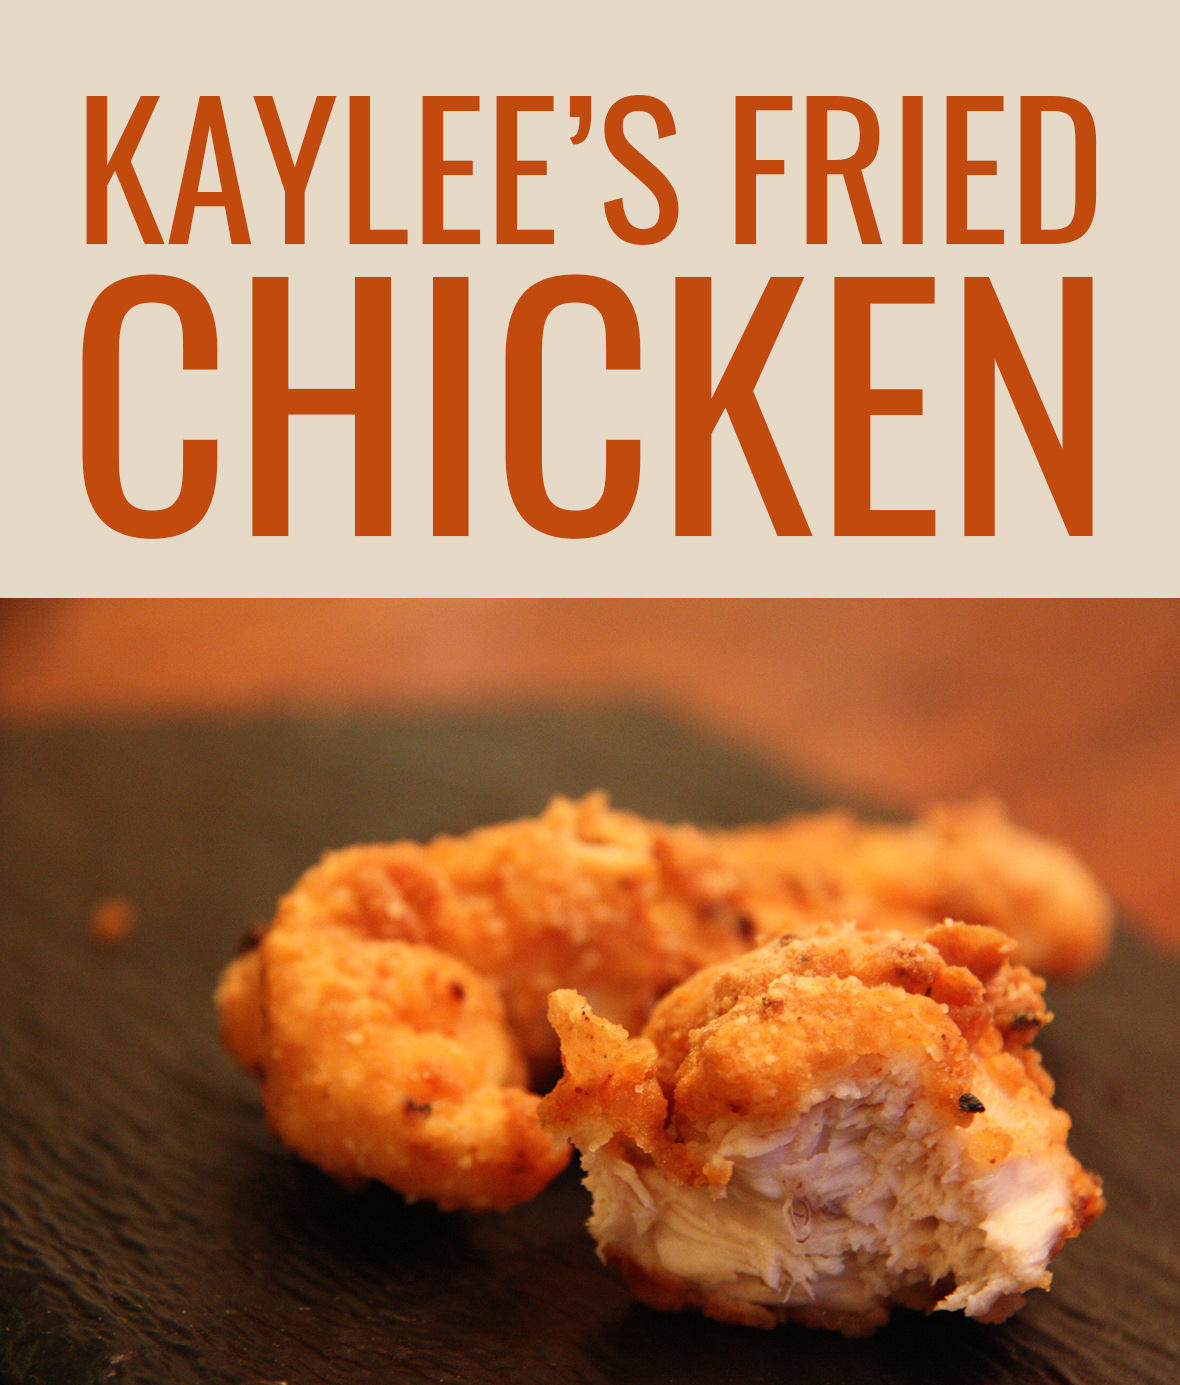 Kaylee's Fried Chicken